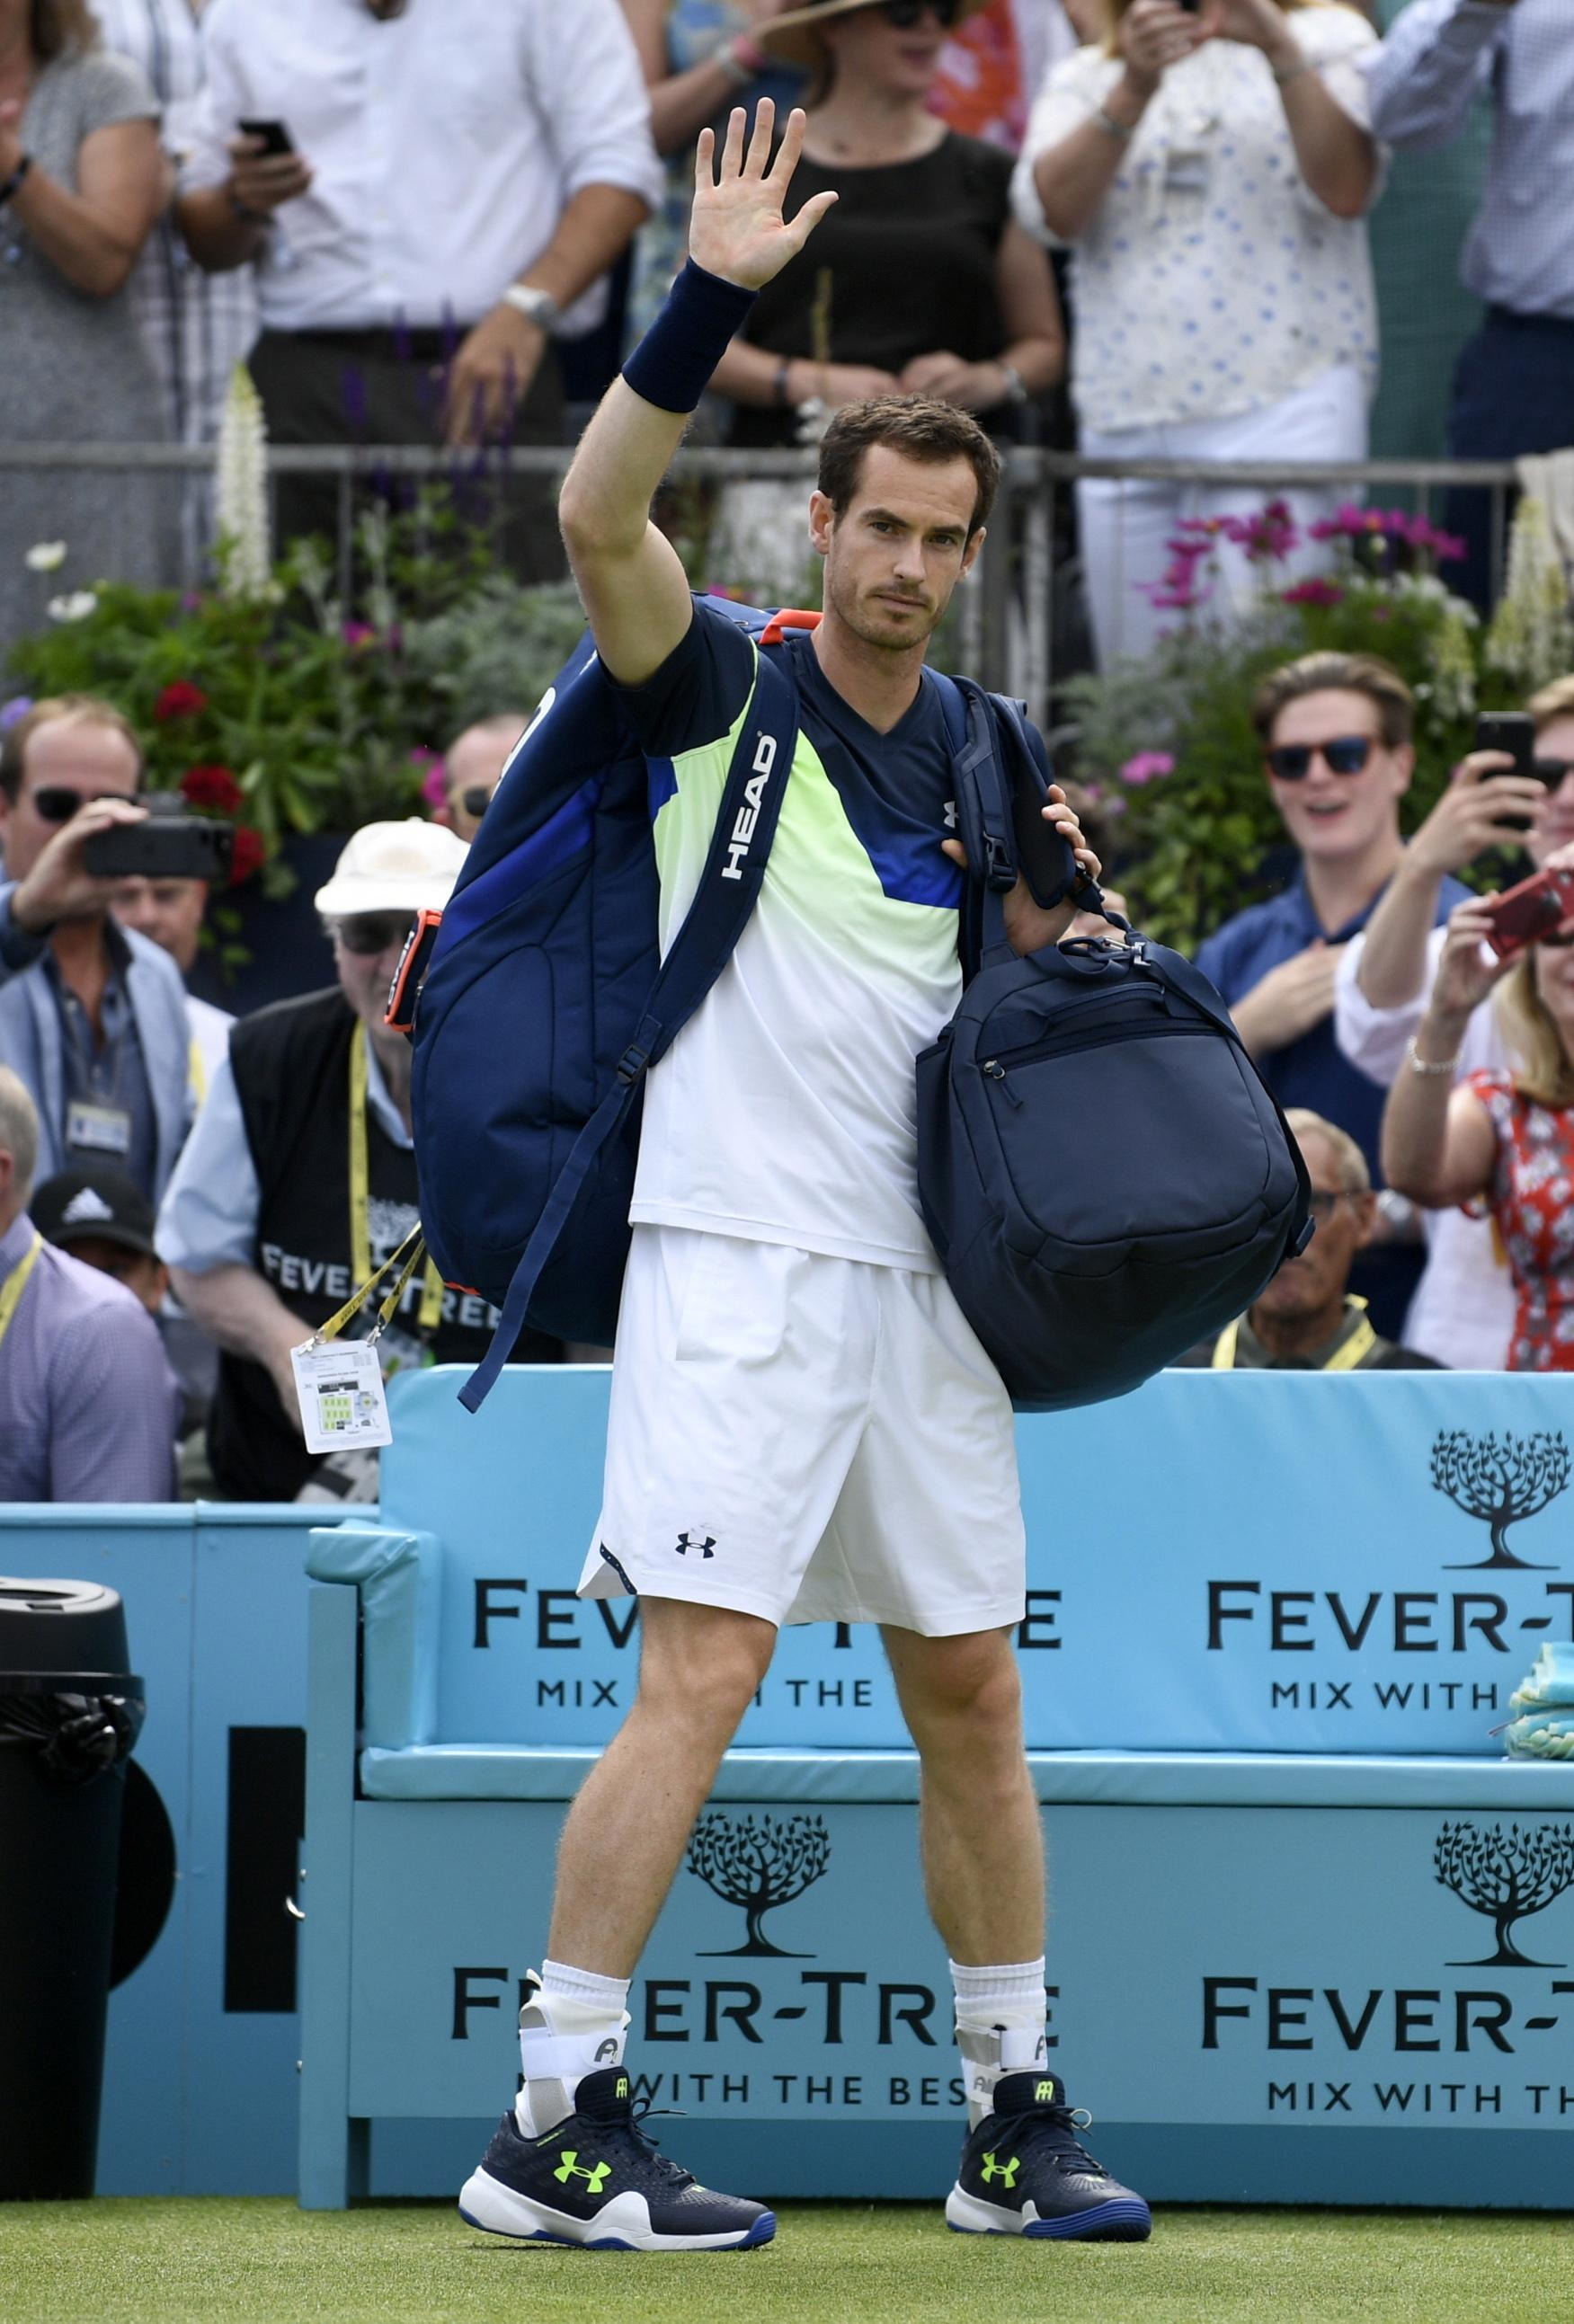 Andy Murray could miss Wimbledon depending on how his body reacts